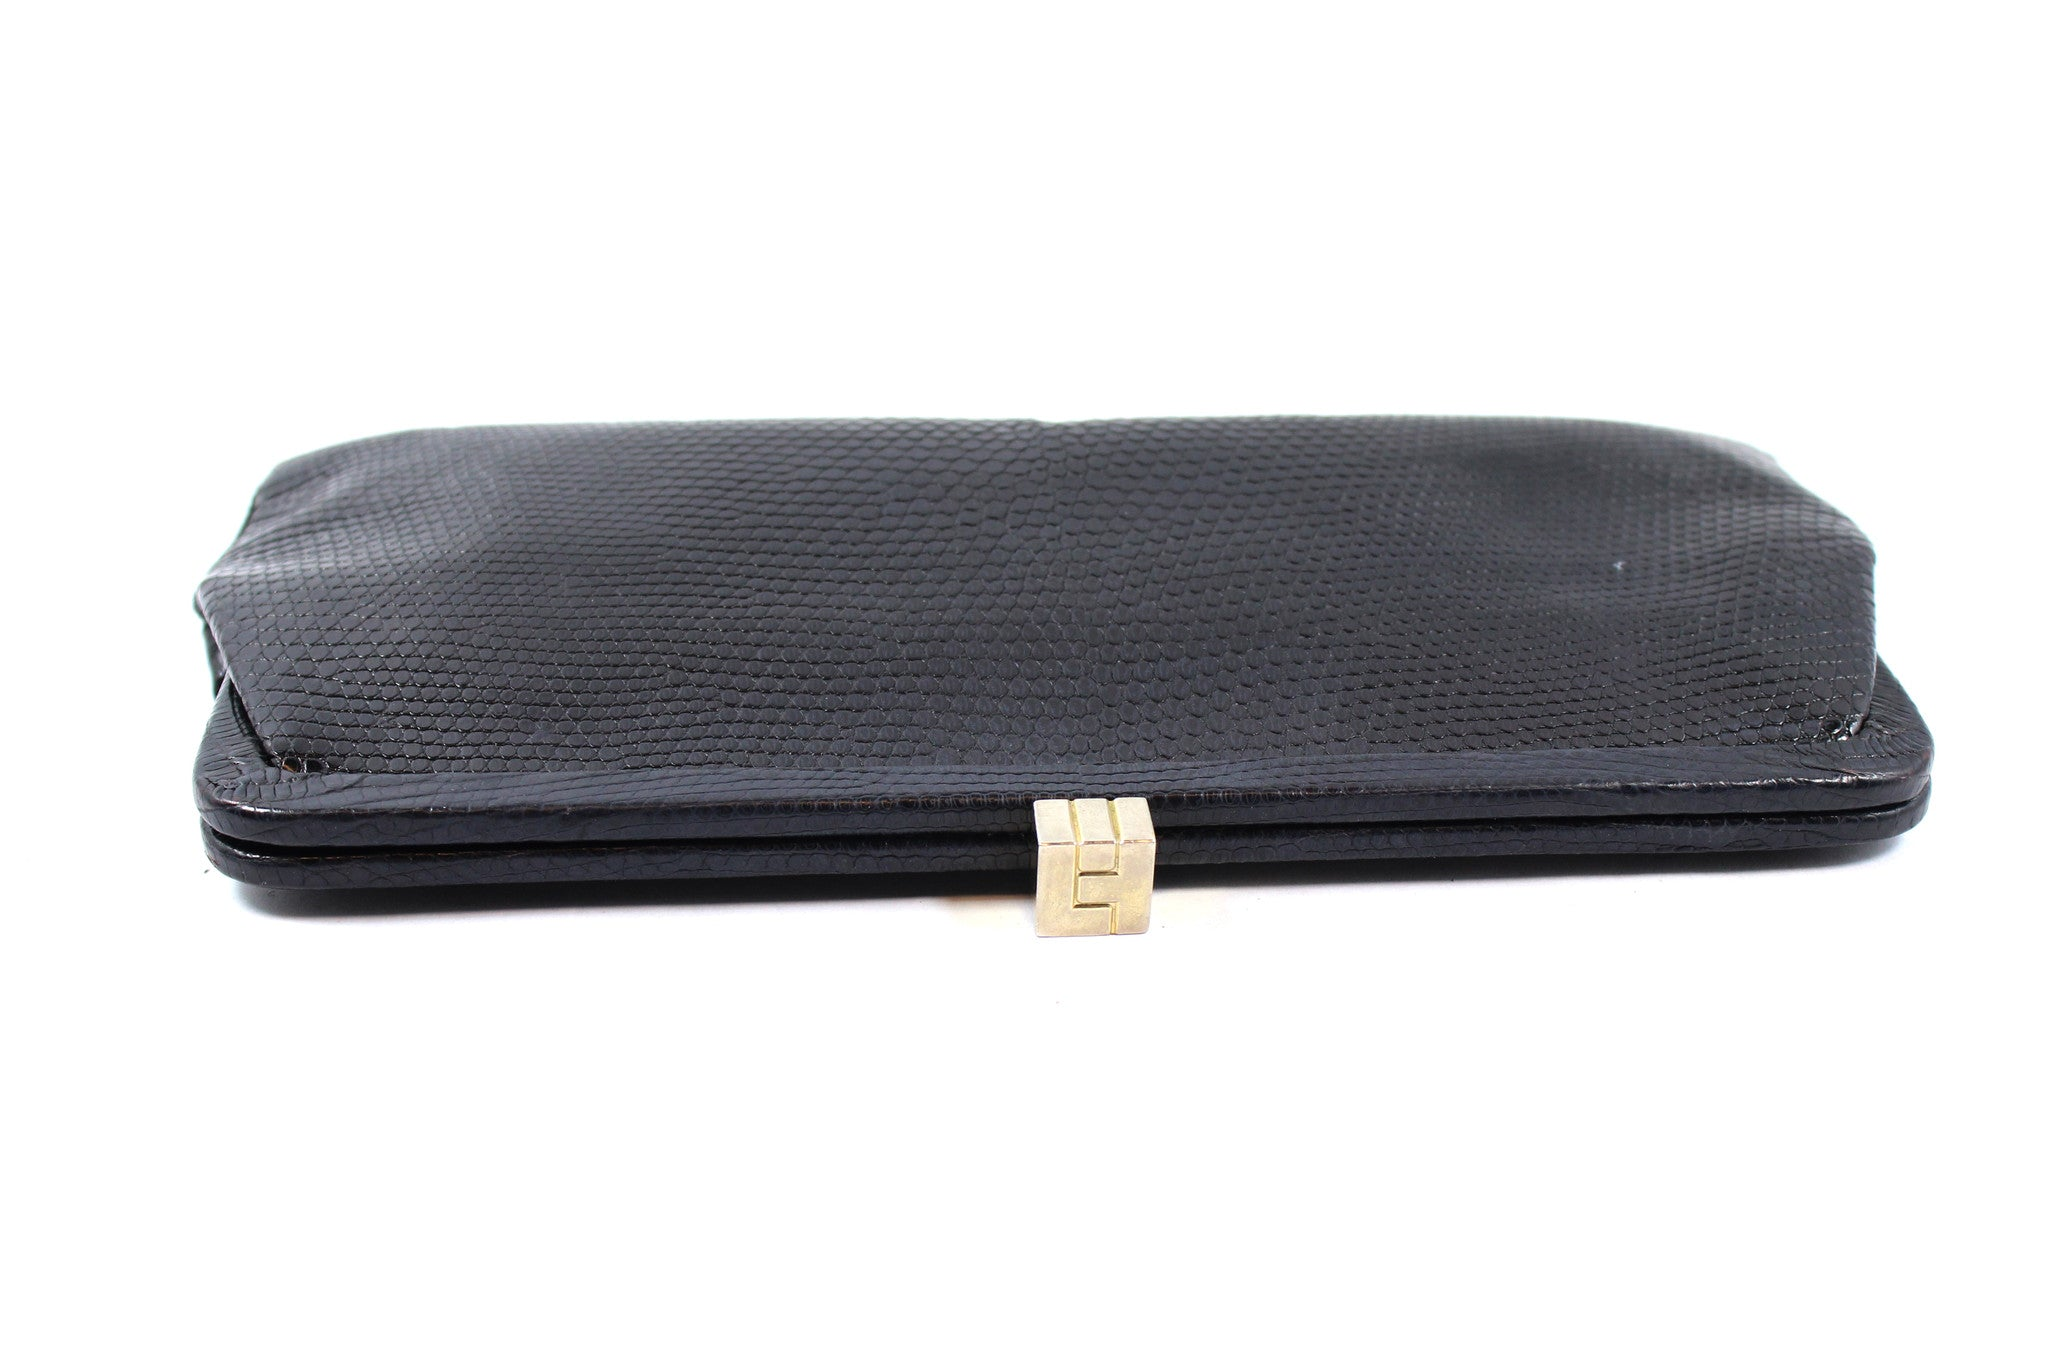 Lambertson Truex Black Lizard Clutch - Encore Consignment - 3